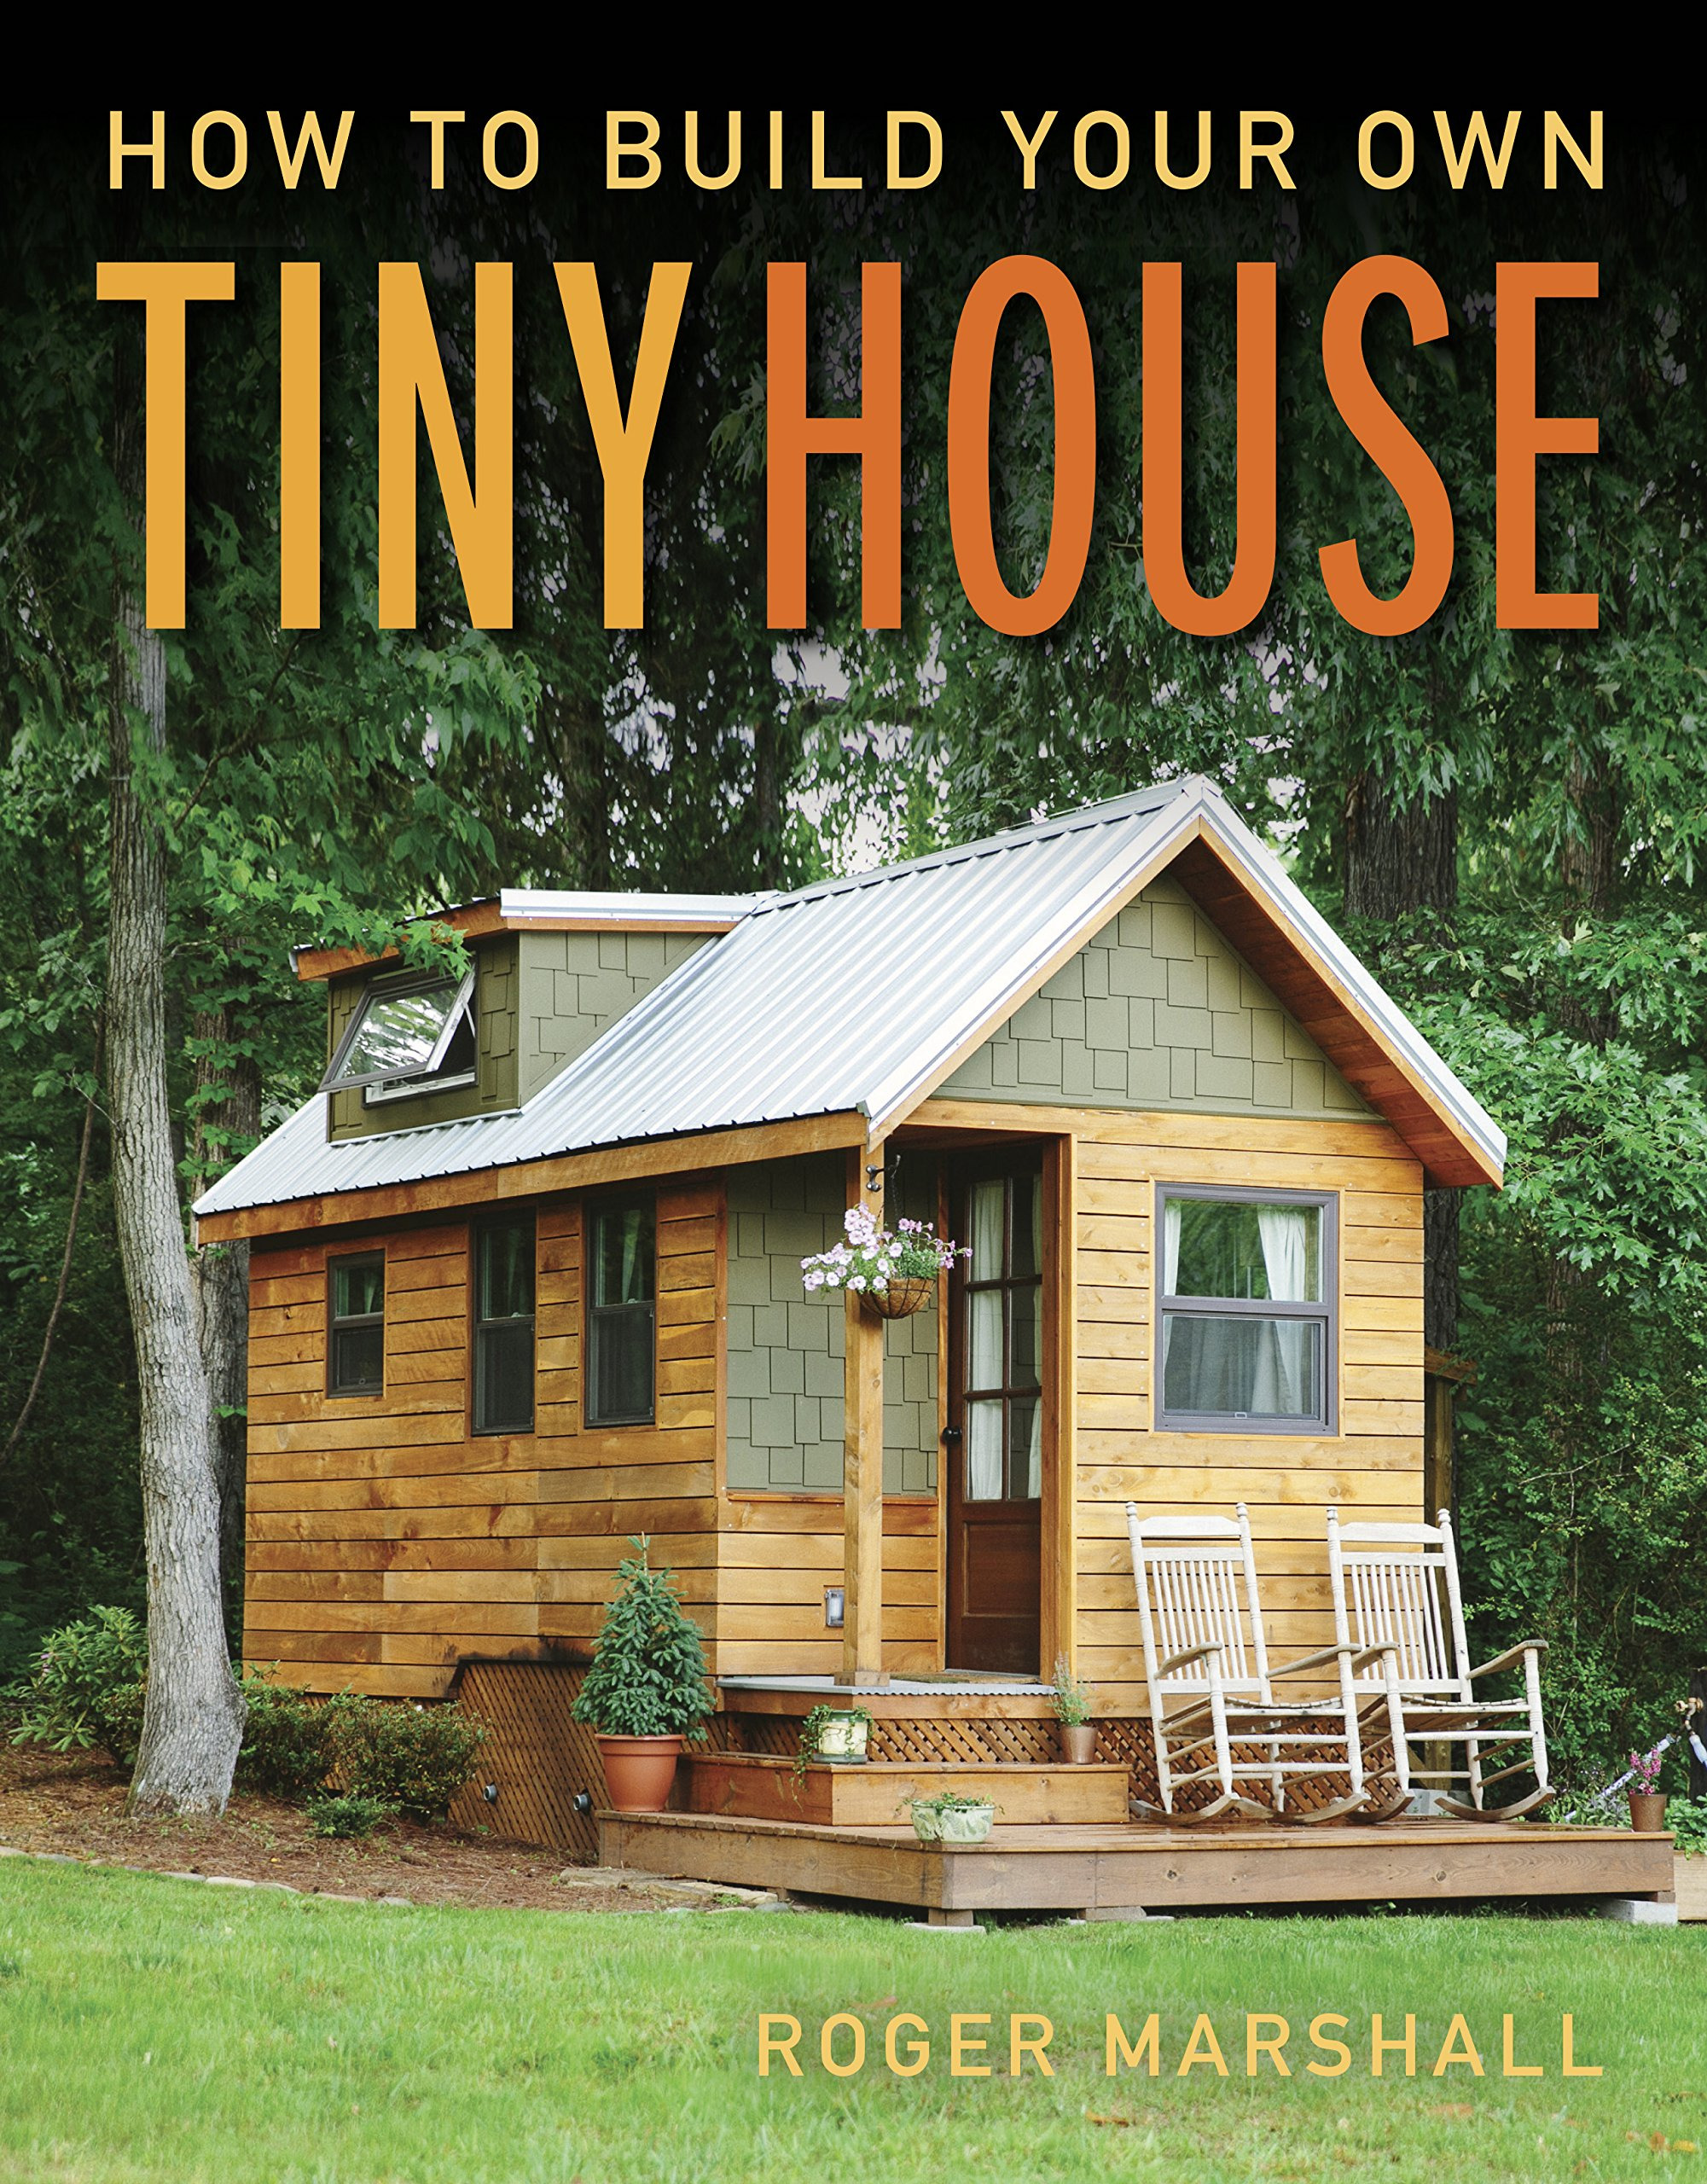 Build A Small House Cheap Fresh How to Build Your Own Tiny House Roger Marshall